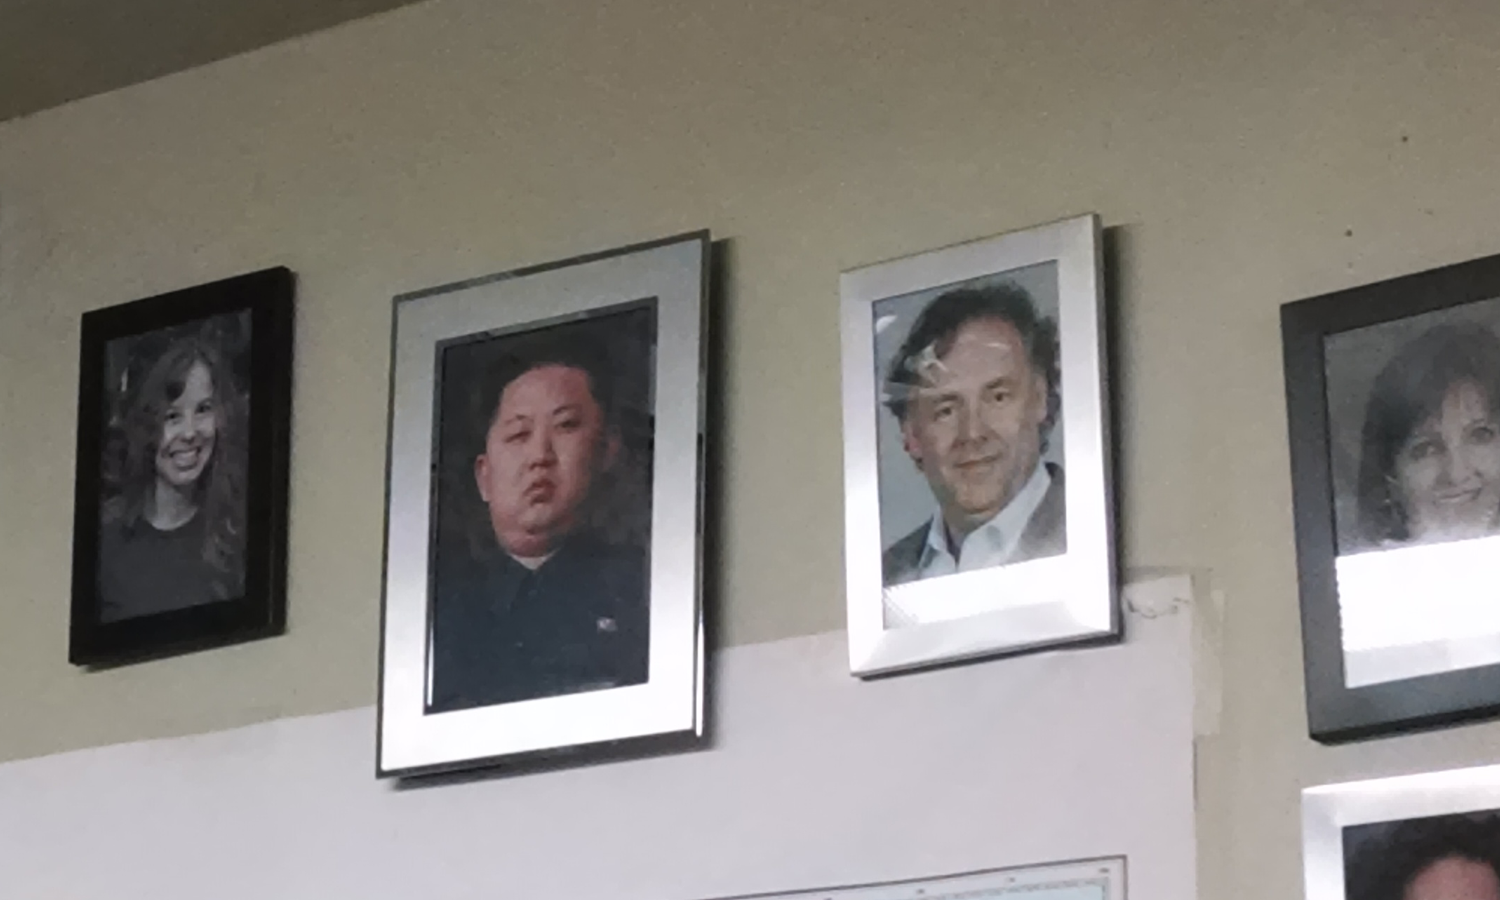 Oh Admin, Glorious Employee of the Month. He is employee of every month. Picture of lady is higher than our glorious leader. Admin, finish her off. (100% not OC